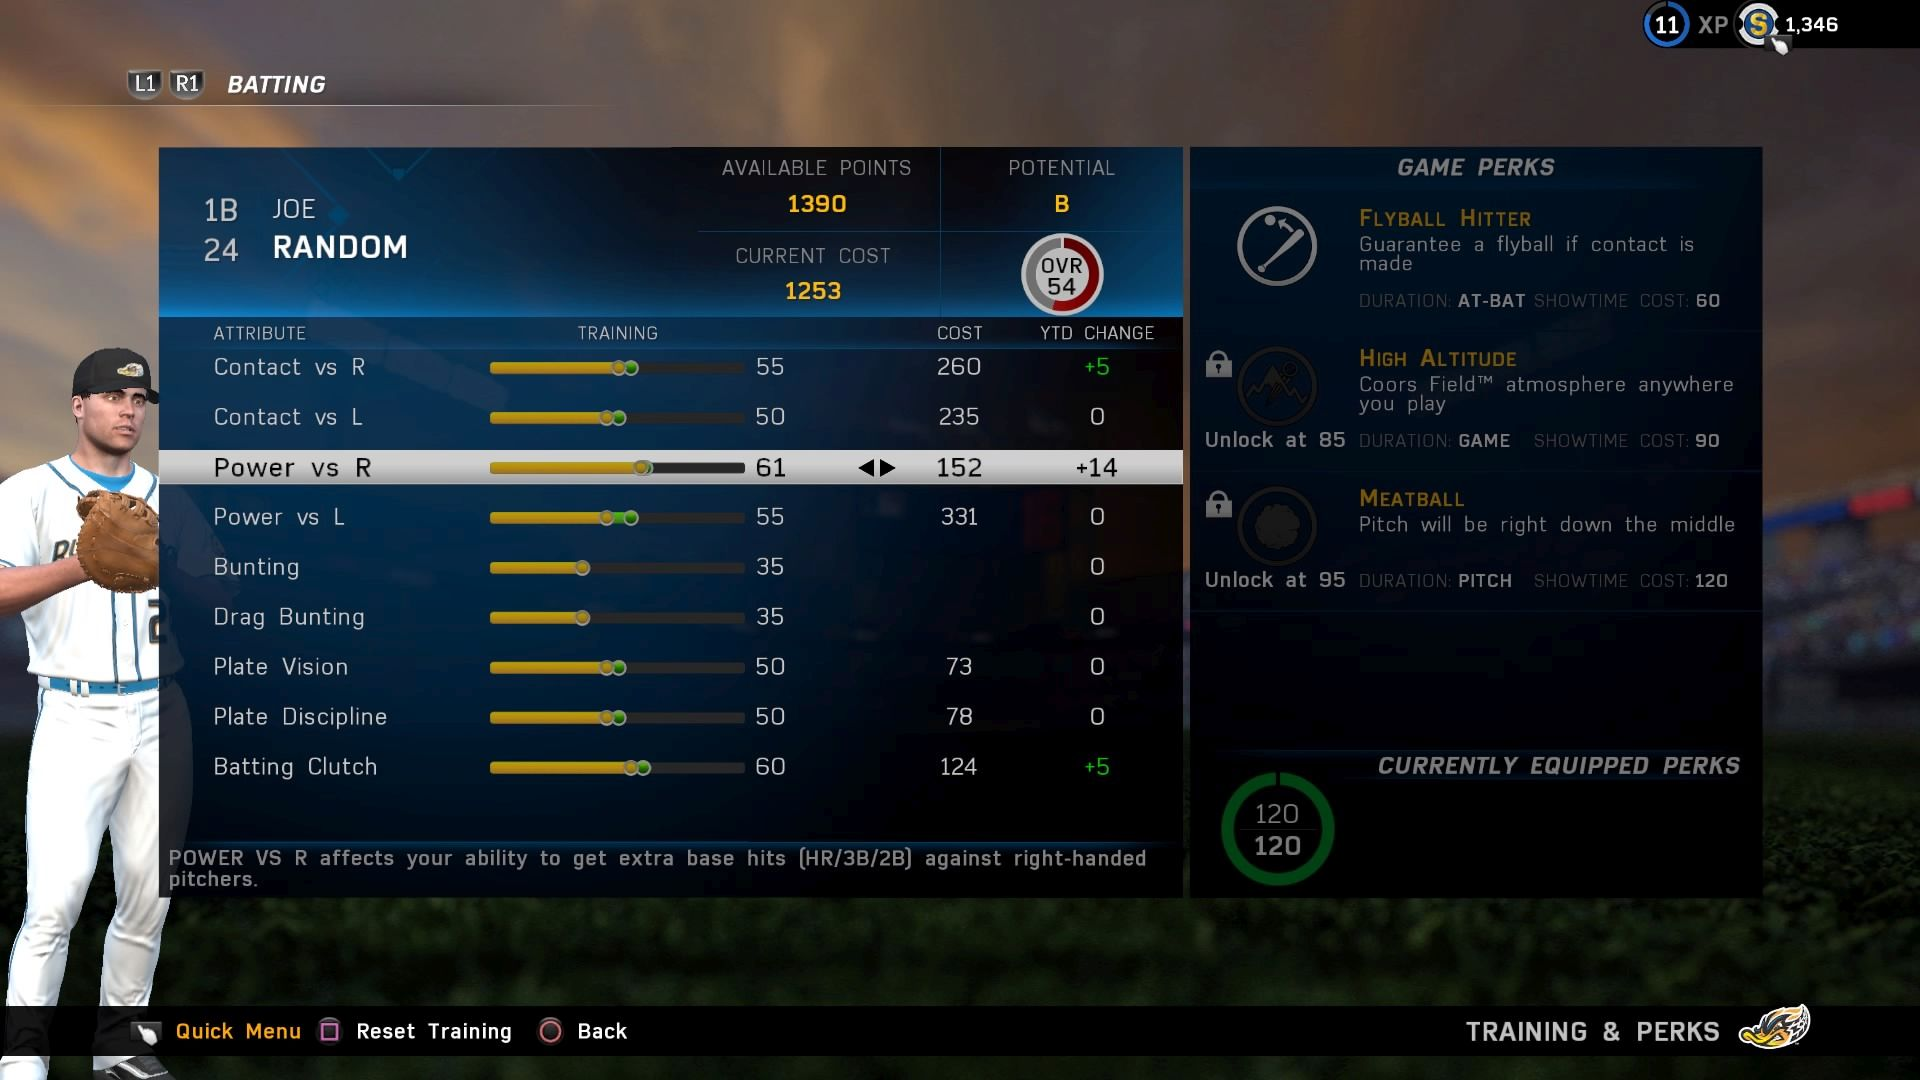 A step-by-step guide to building an all-star player in MLB